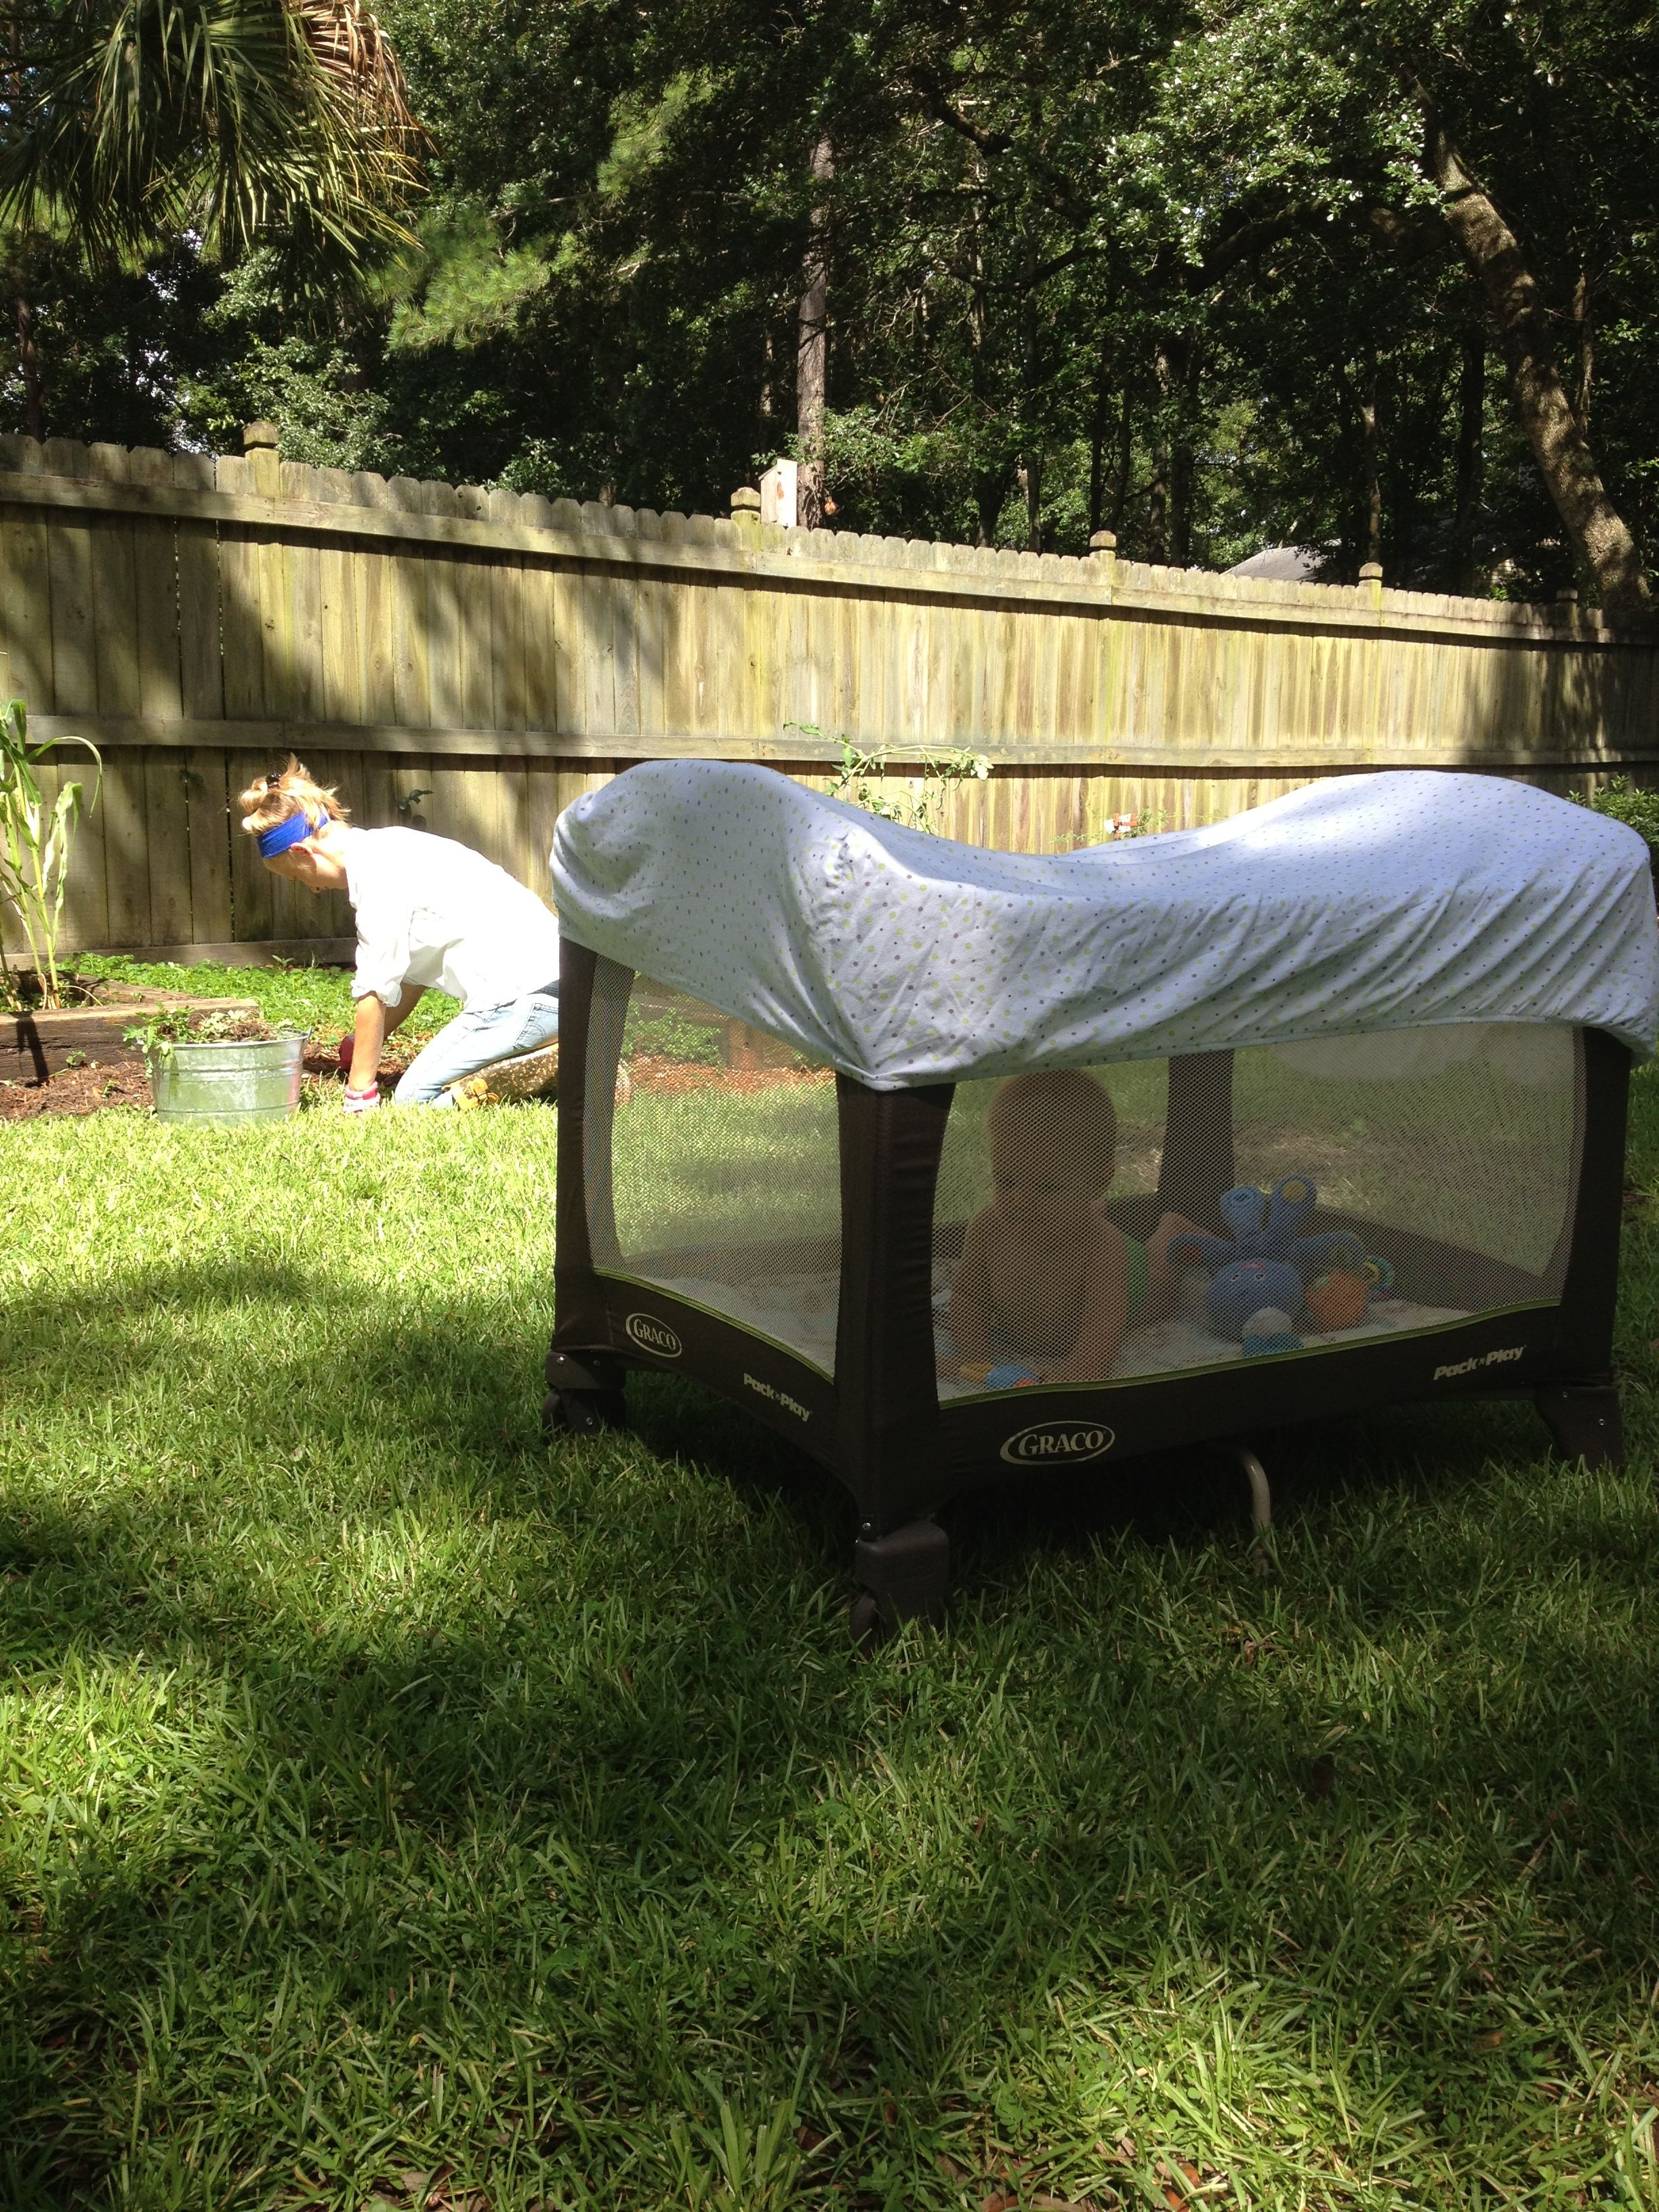 Fitted Sheet Over Playpen To Keep Bugs Out And For Shade